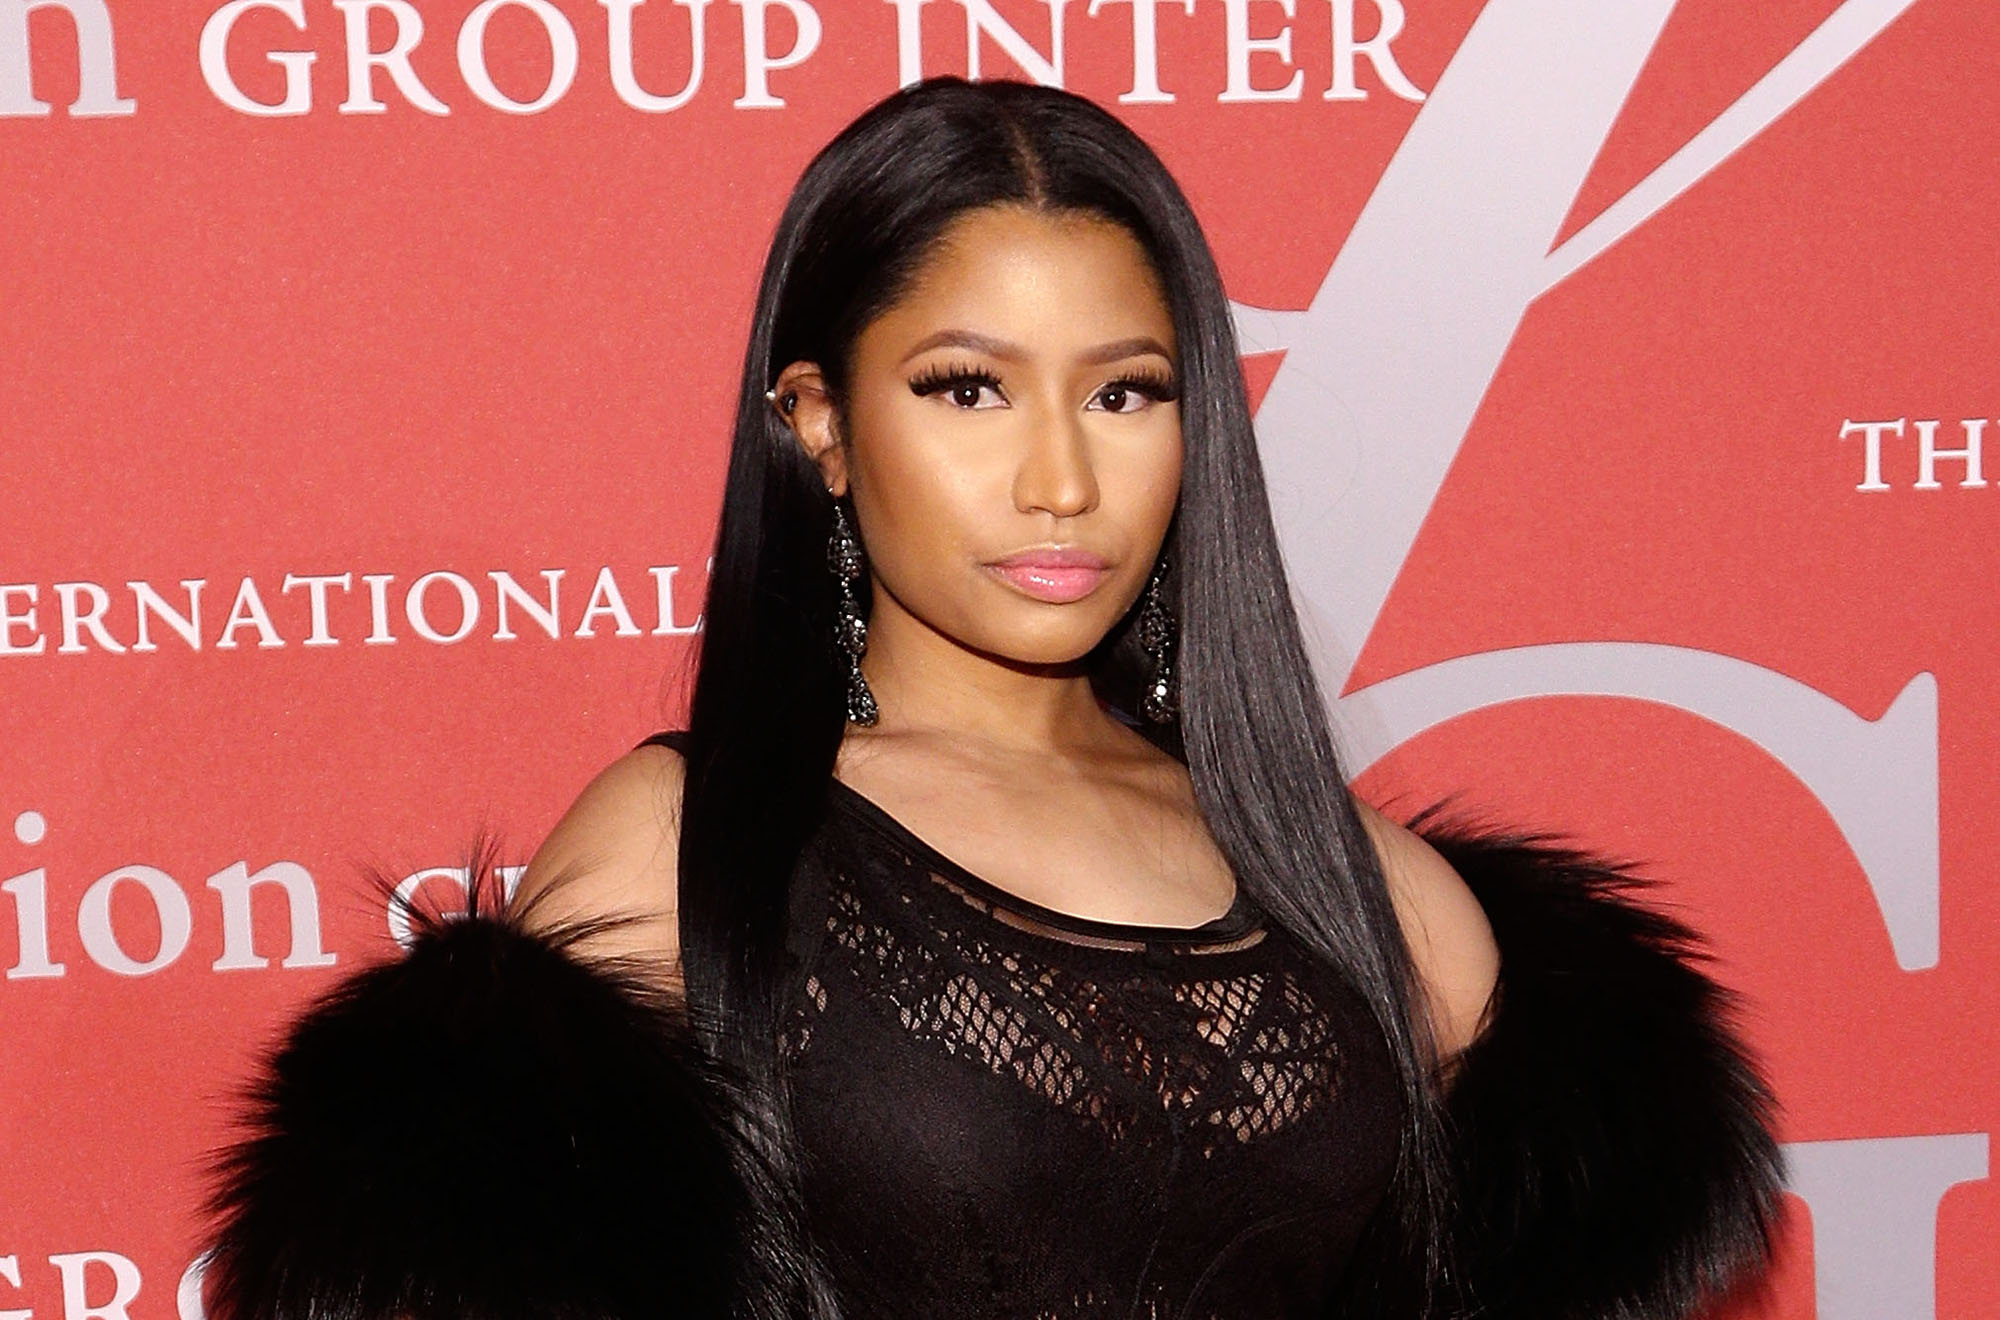 Nicki Minaj attends Fashion Group International's 2016 Night of Stars at Cipriani Wall Street on October 27, 2016 in New York City.  (Photo by Taylor Hill/FilmMagic)